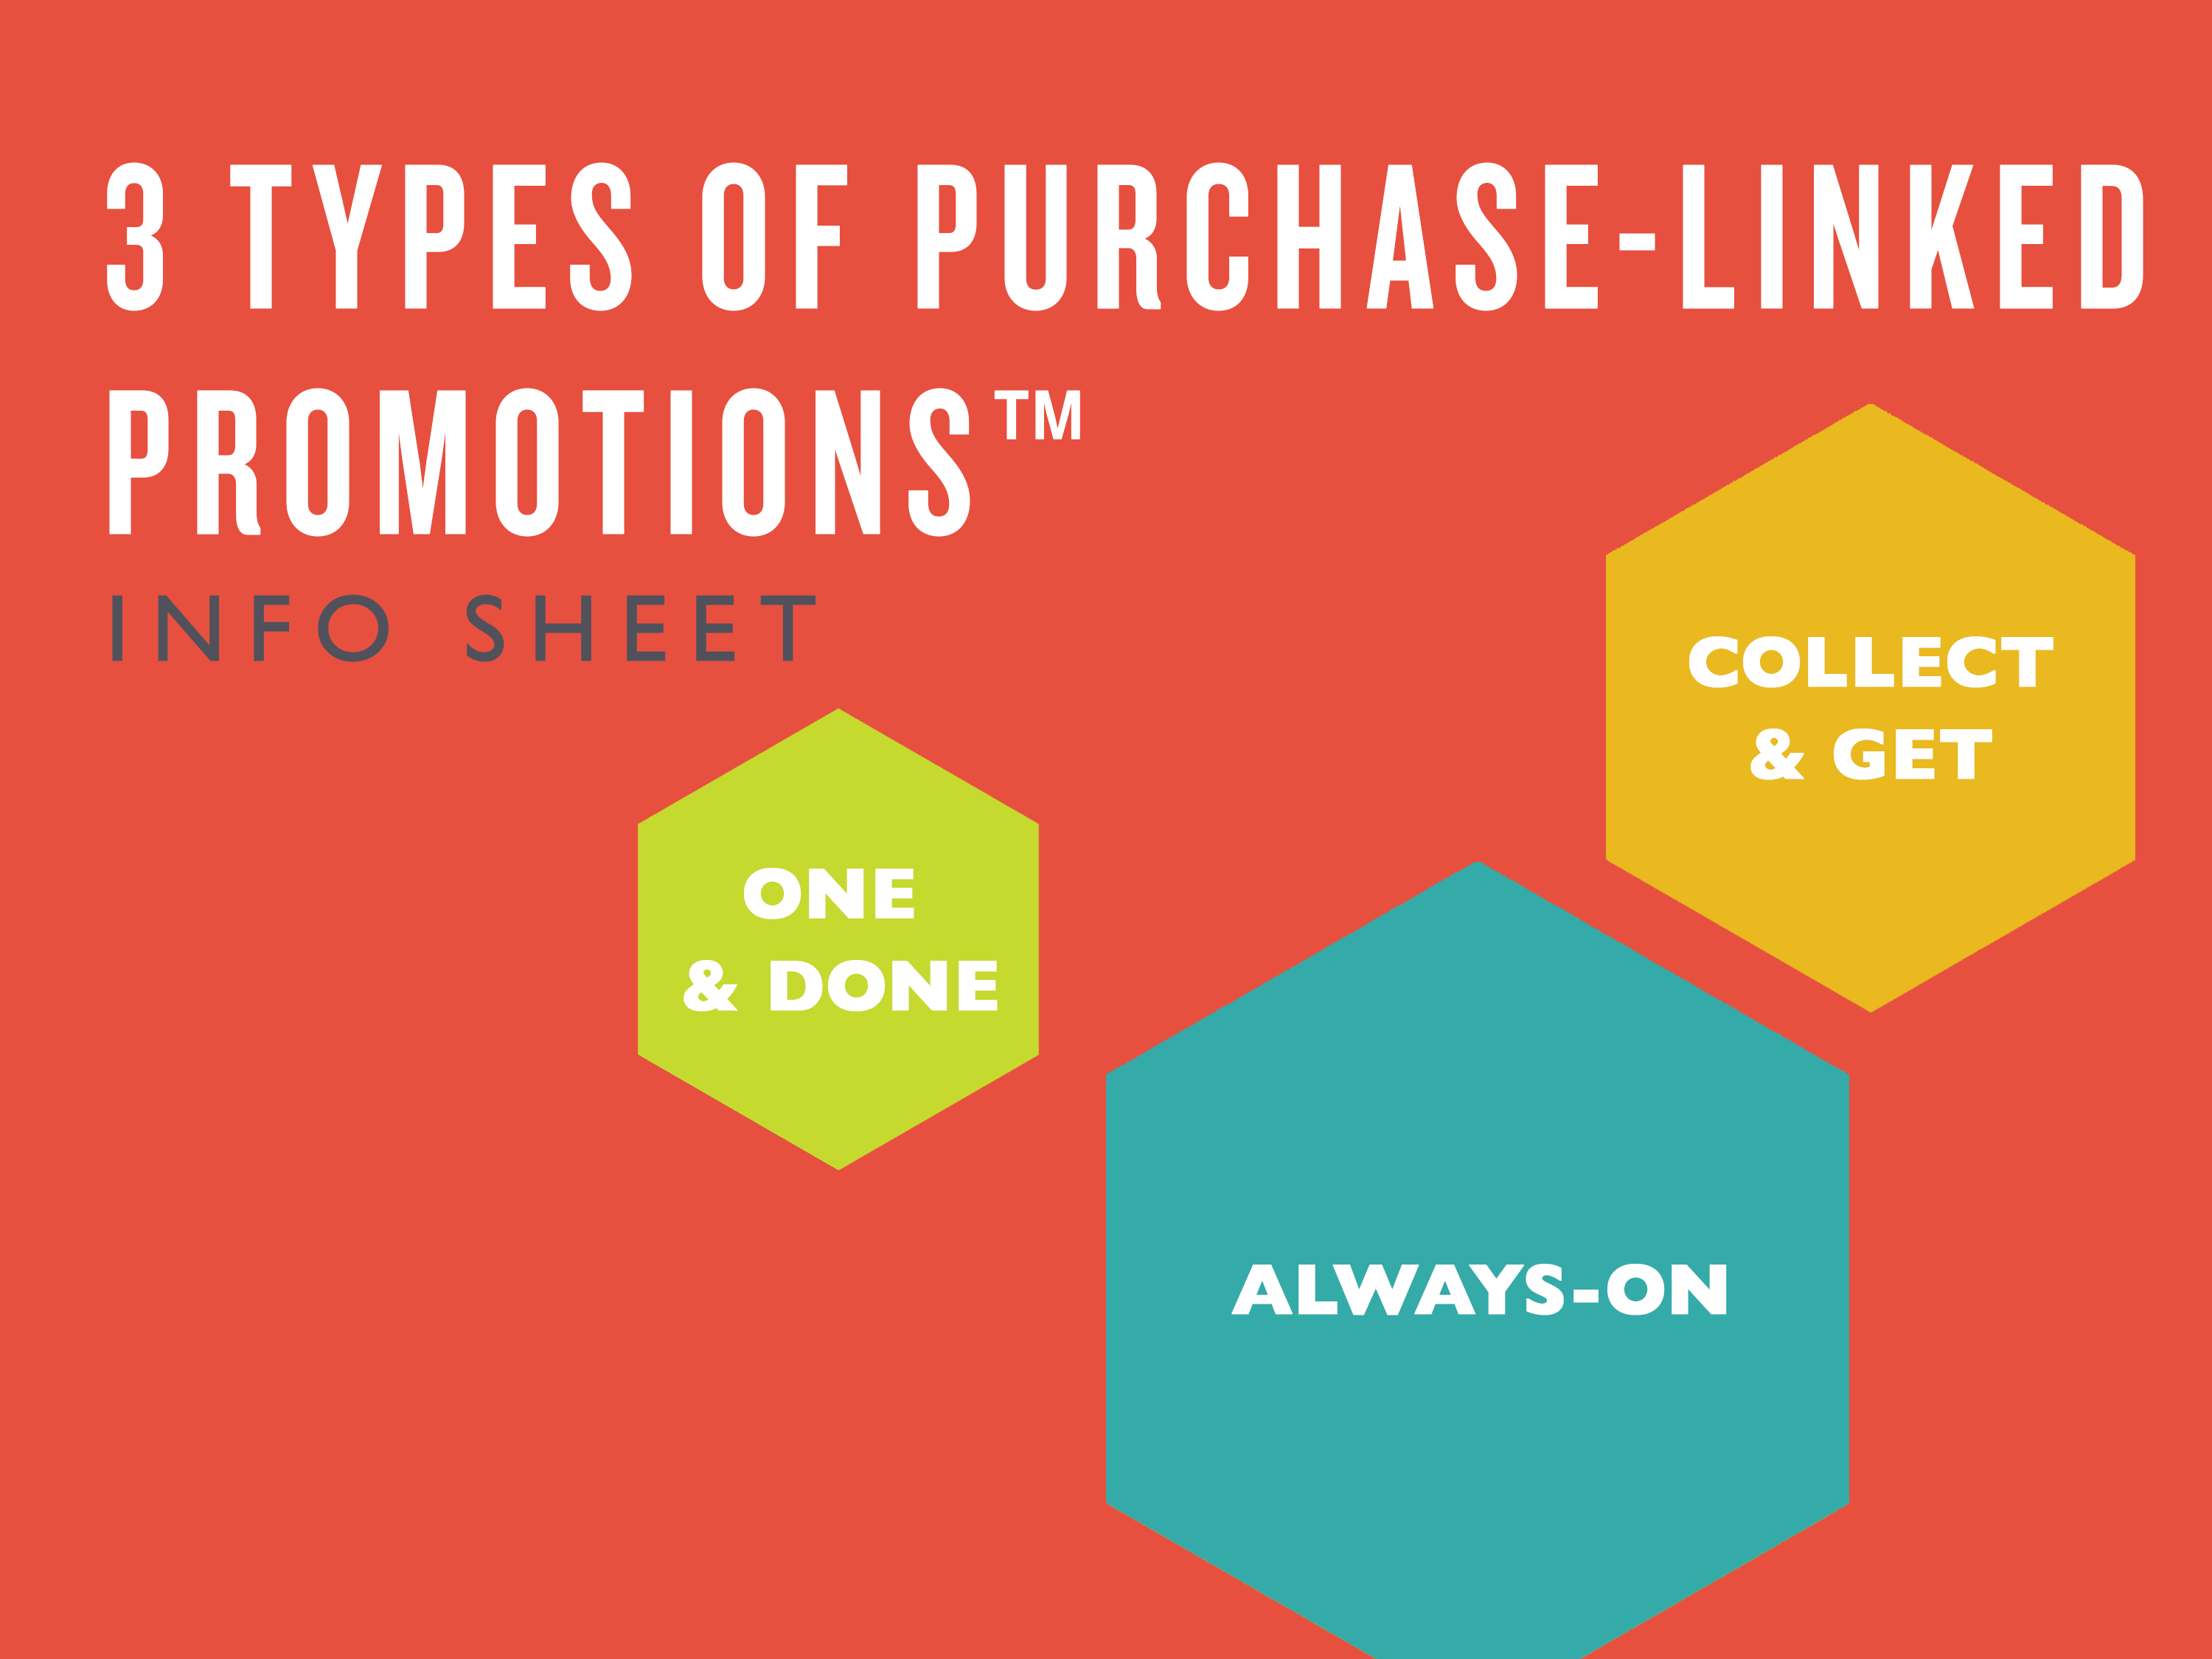 3 Types of Purchase-Linked Promotions™ Comparison